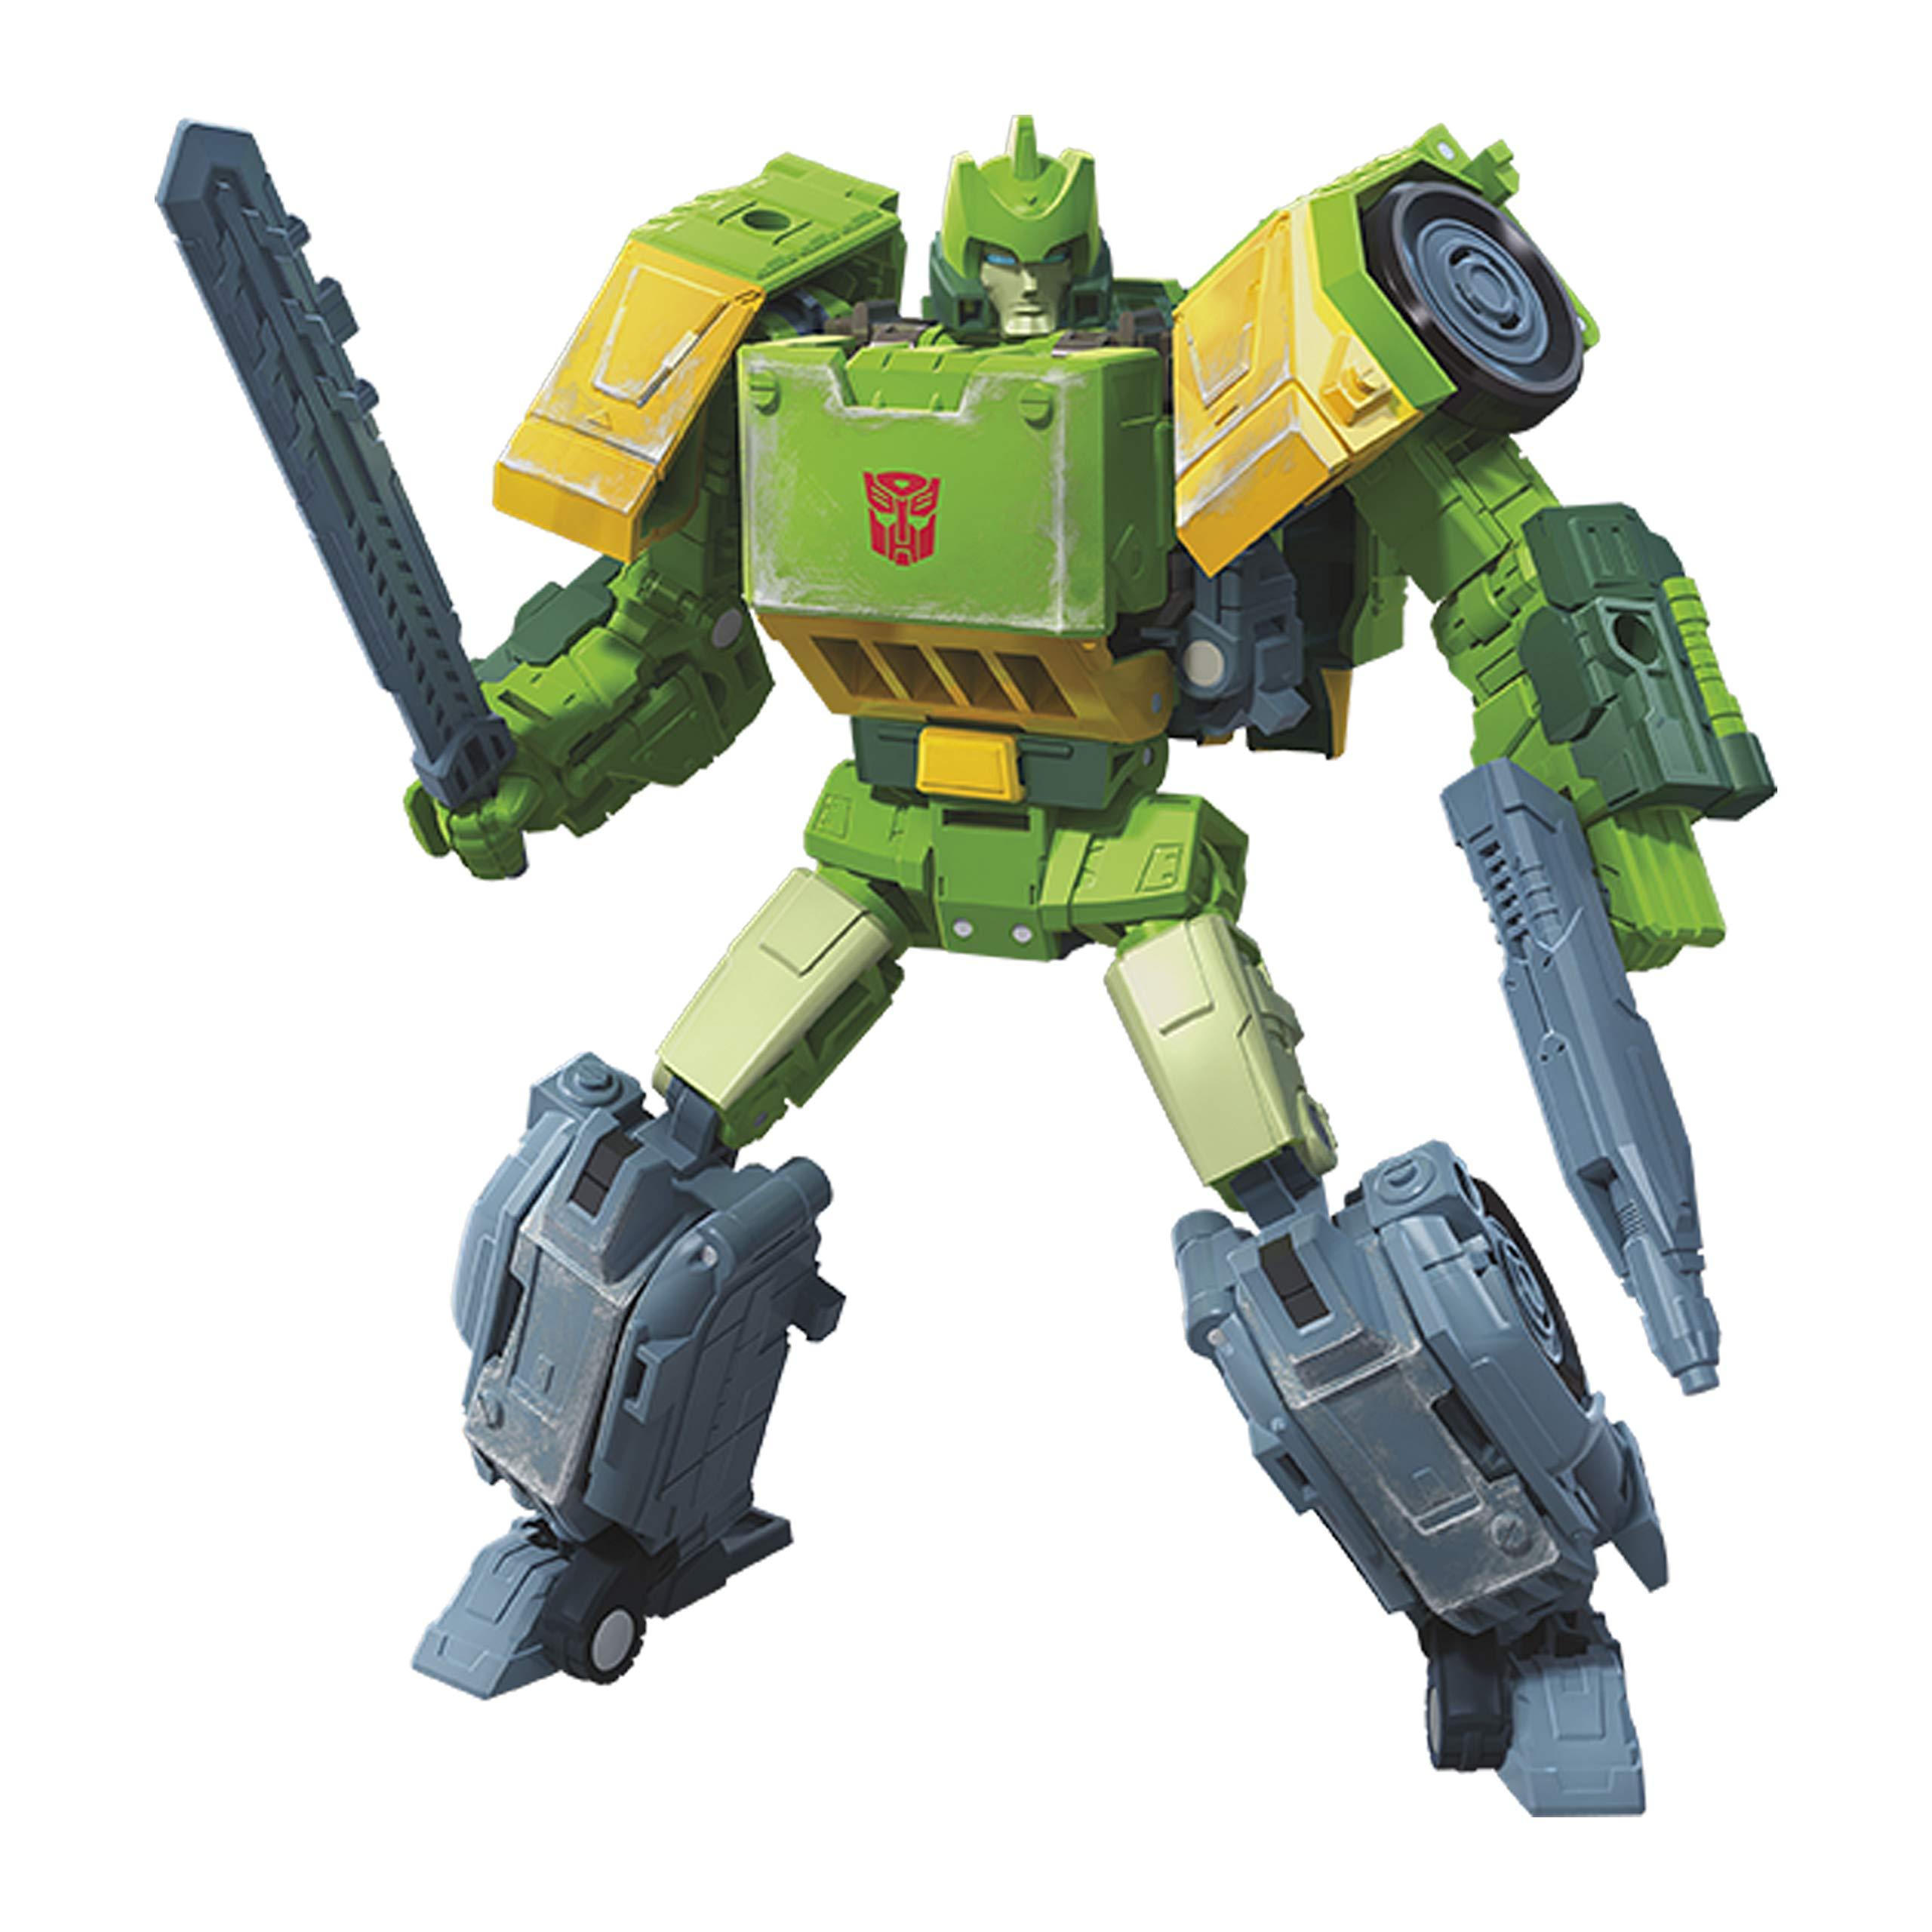 Transformers Toys Generations War for Cybertron Voyager Wfc-S38 Autobot Springer Action Figure - Siege Chapter - Adults & Kids Ages 8 & Up, 7''